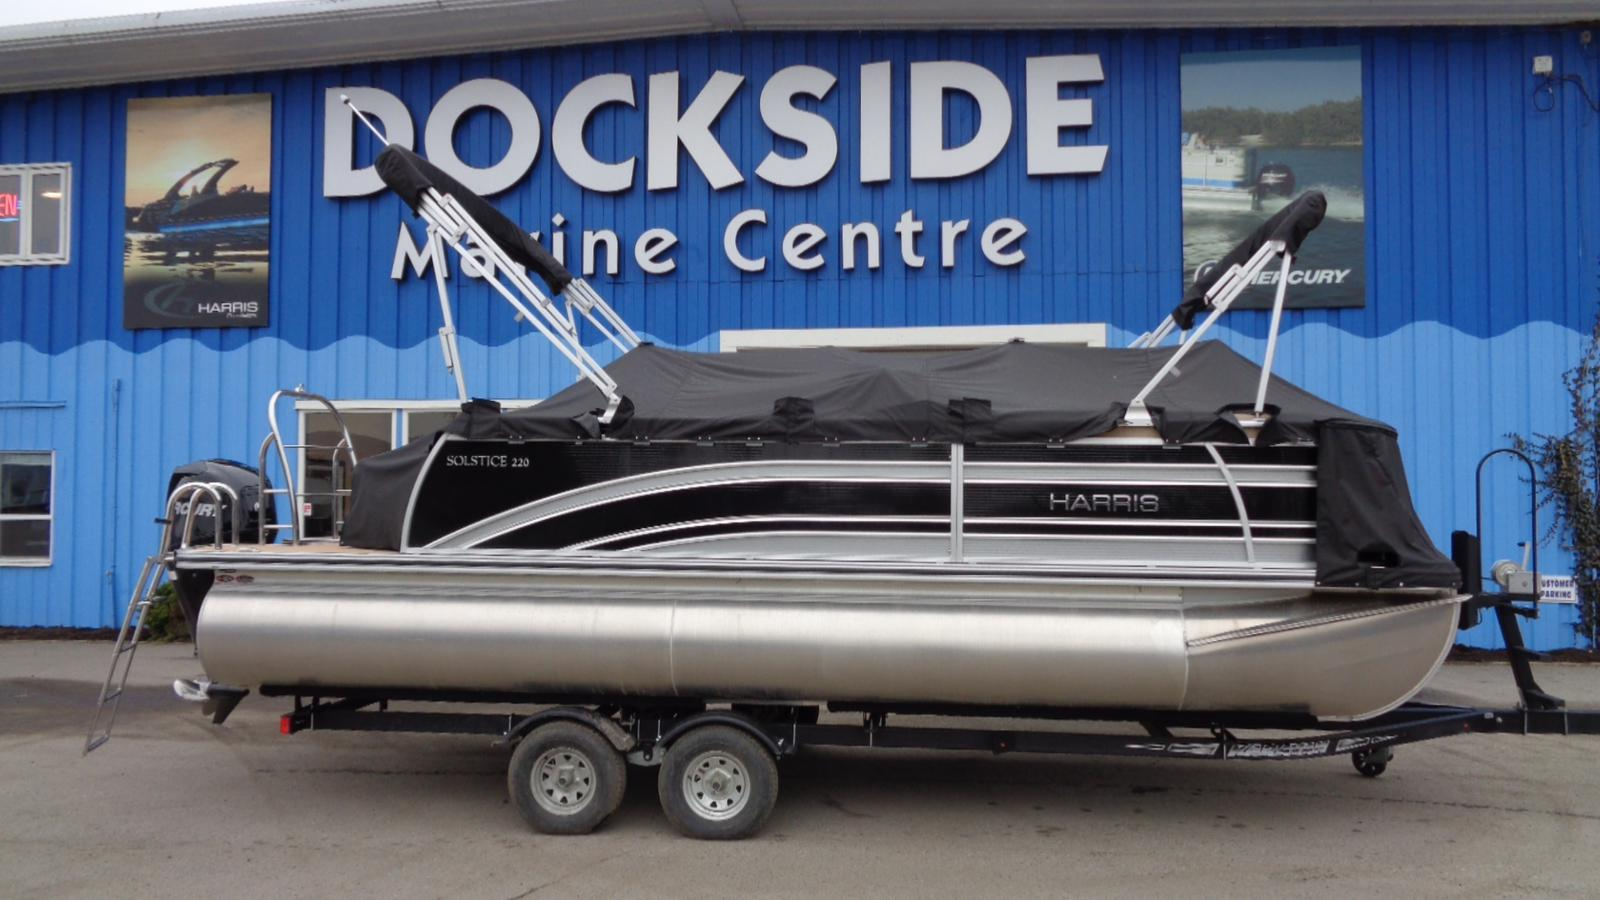 For Sale: 2017 Harris Solstice 220 23ft<br/>Dockside Marine Centre, LTD.